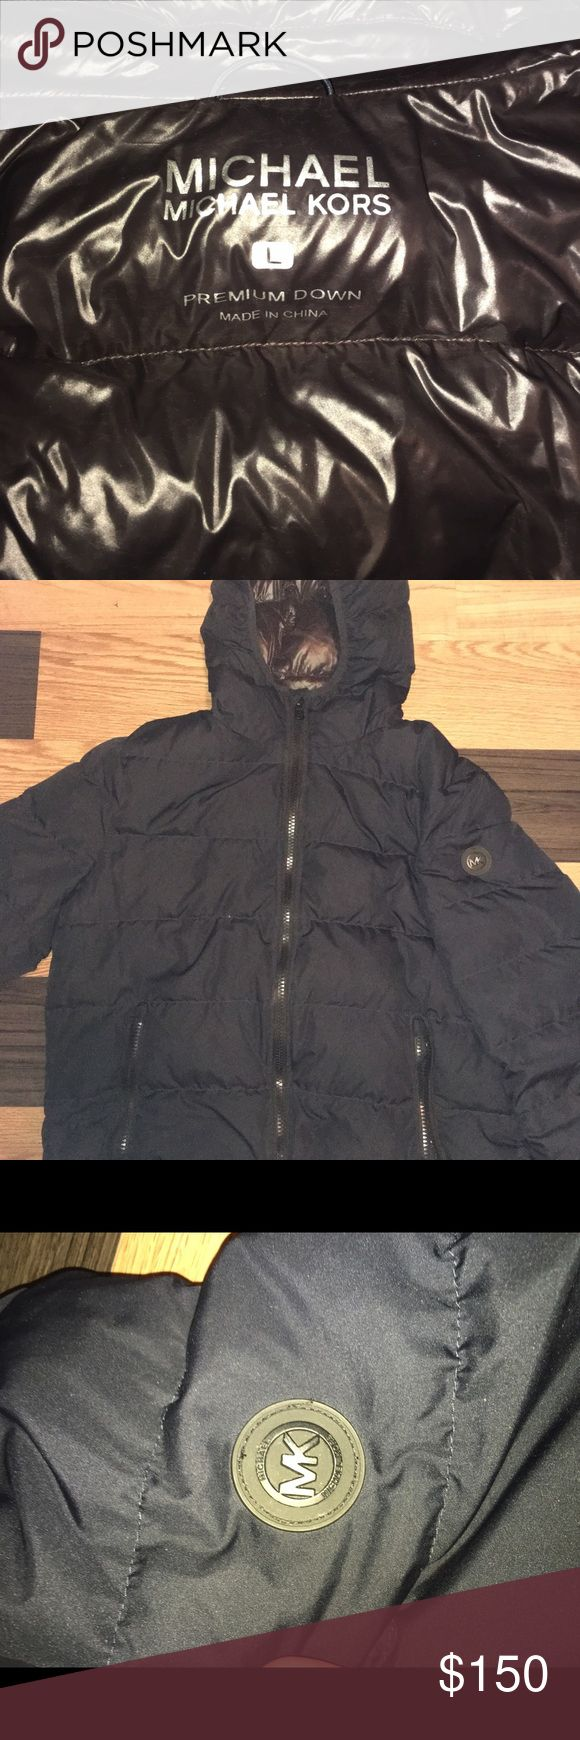 Michael Kors Men jacket Jacket is in like new condition! Great quality and keeps you warm! Navy blue KORS Michael Kors Jackets & Coats Puffers